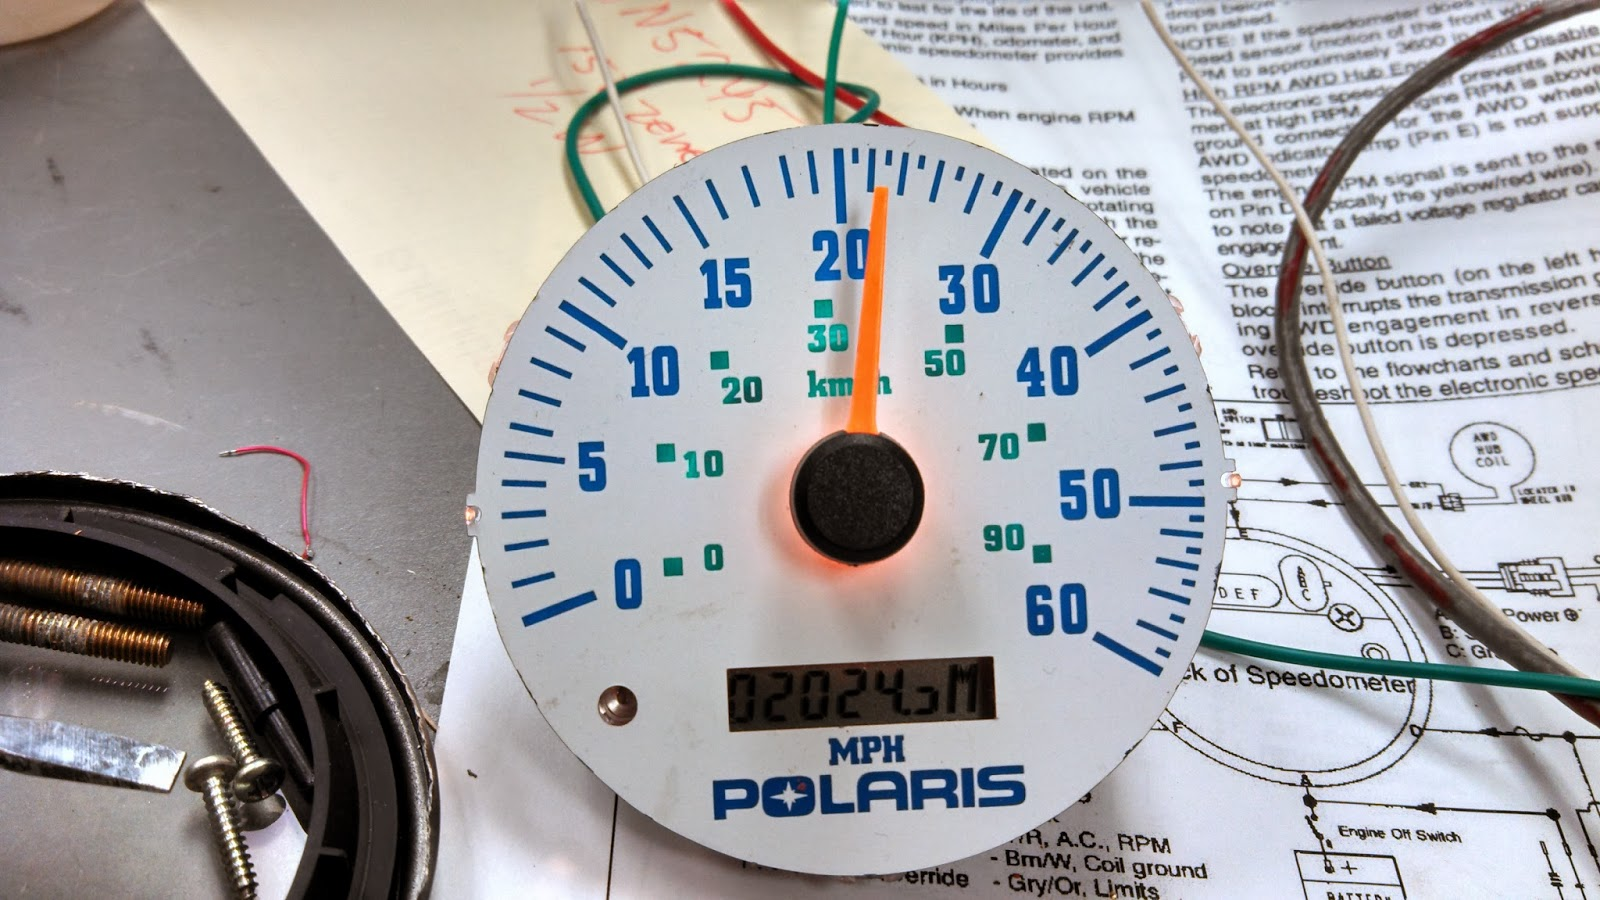 Ka7oeis blog: repair of the speedometer on a polaris sportsman 500